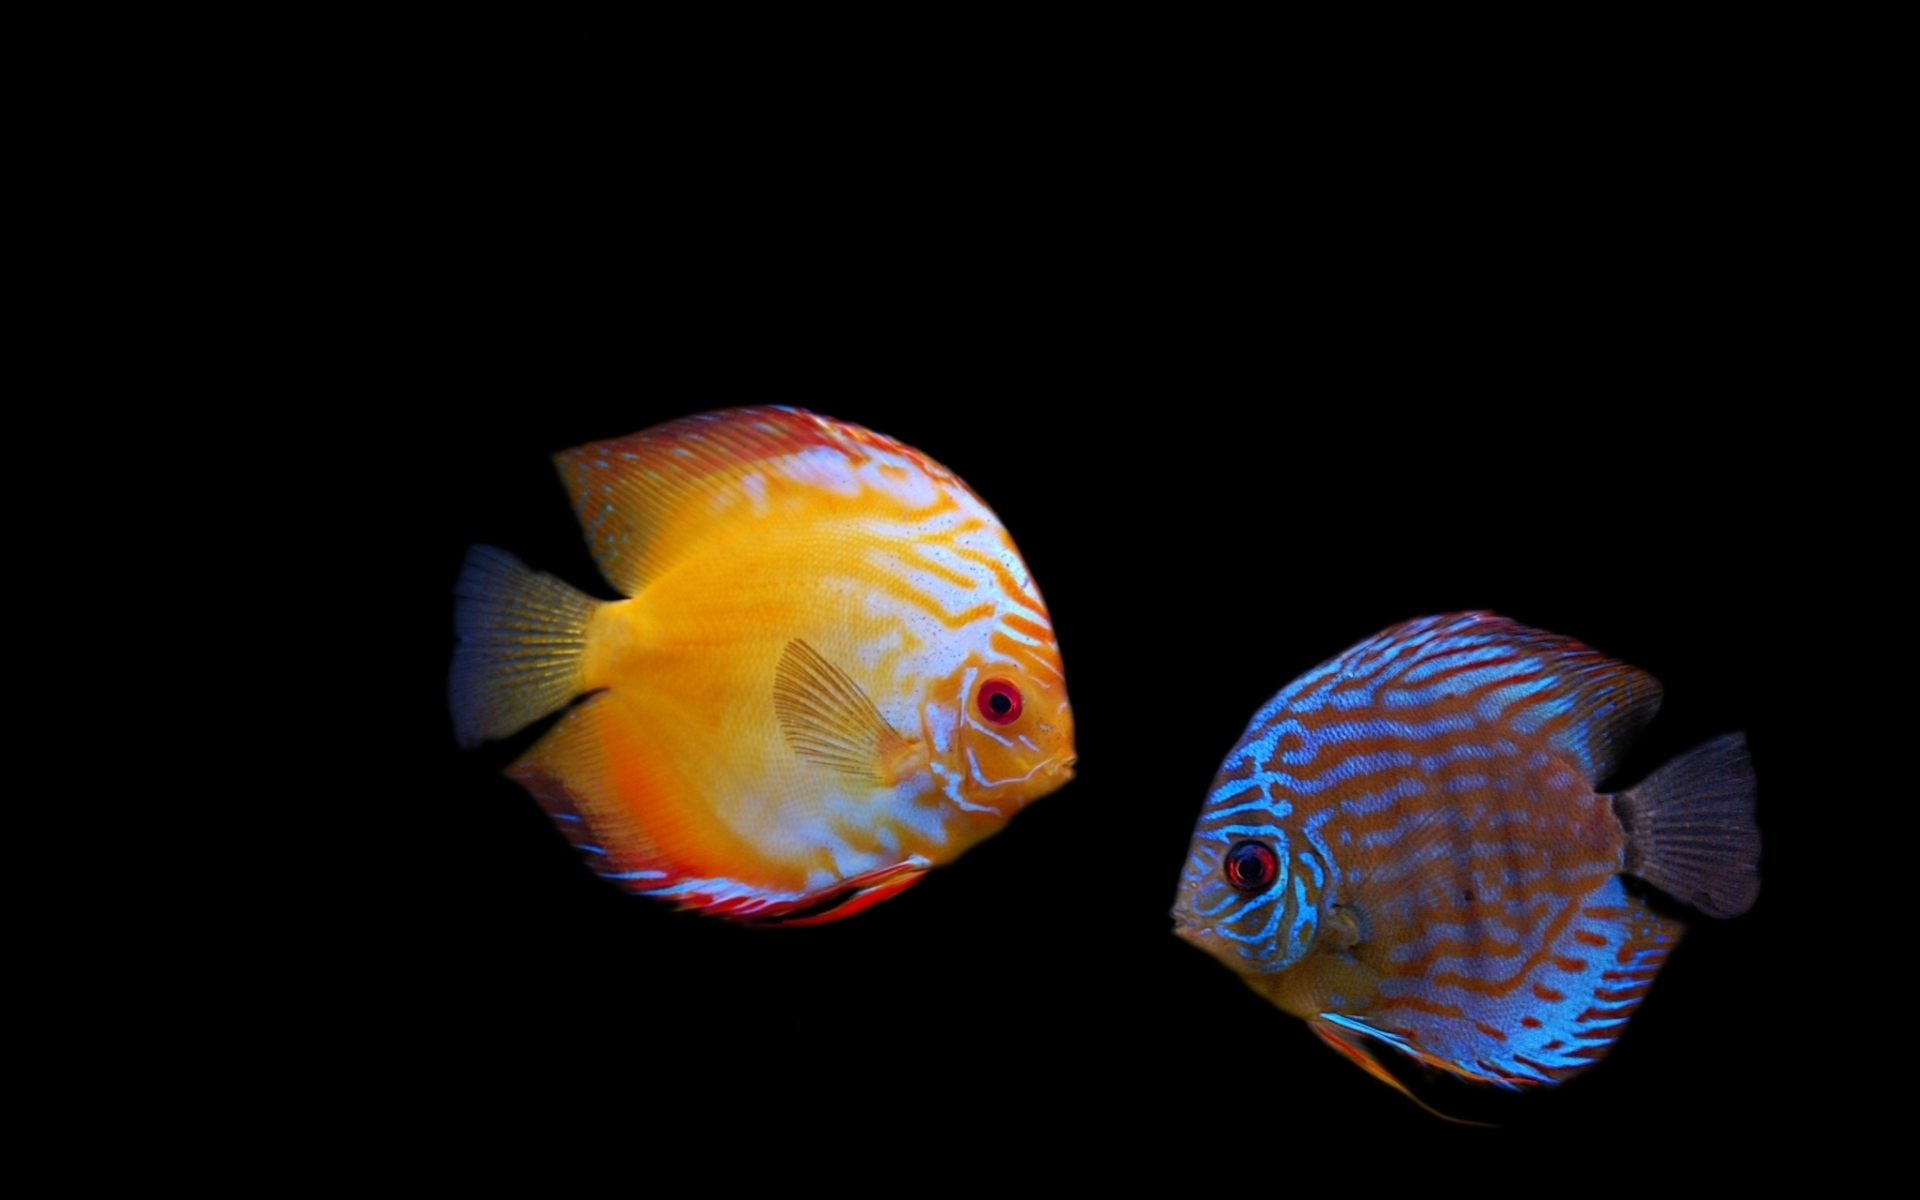 fish 20 discus 20 dark 20 stripes